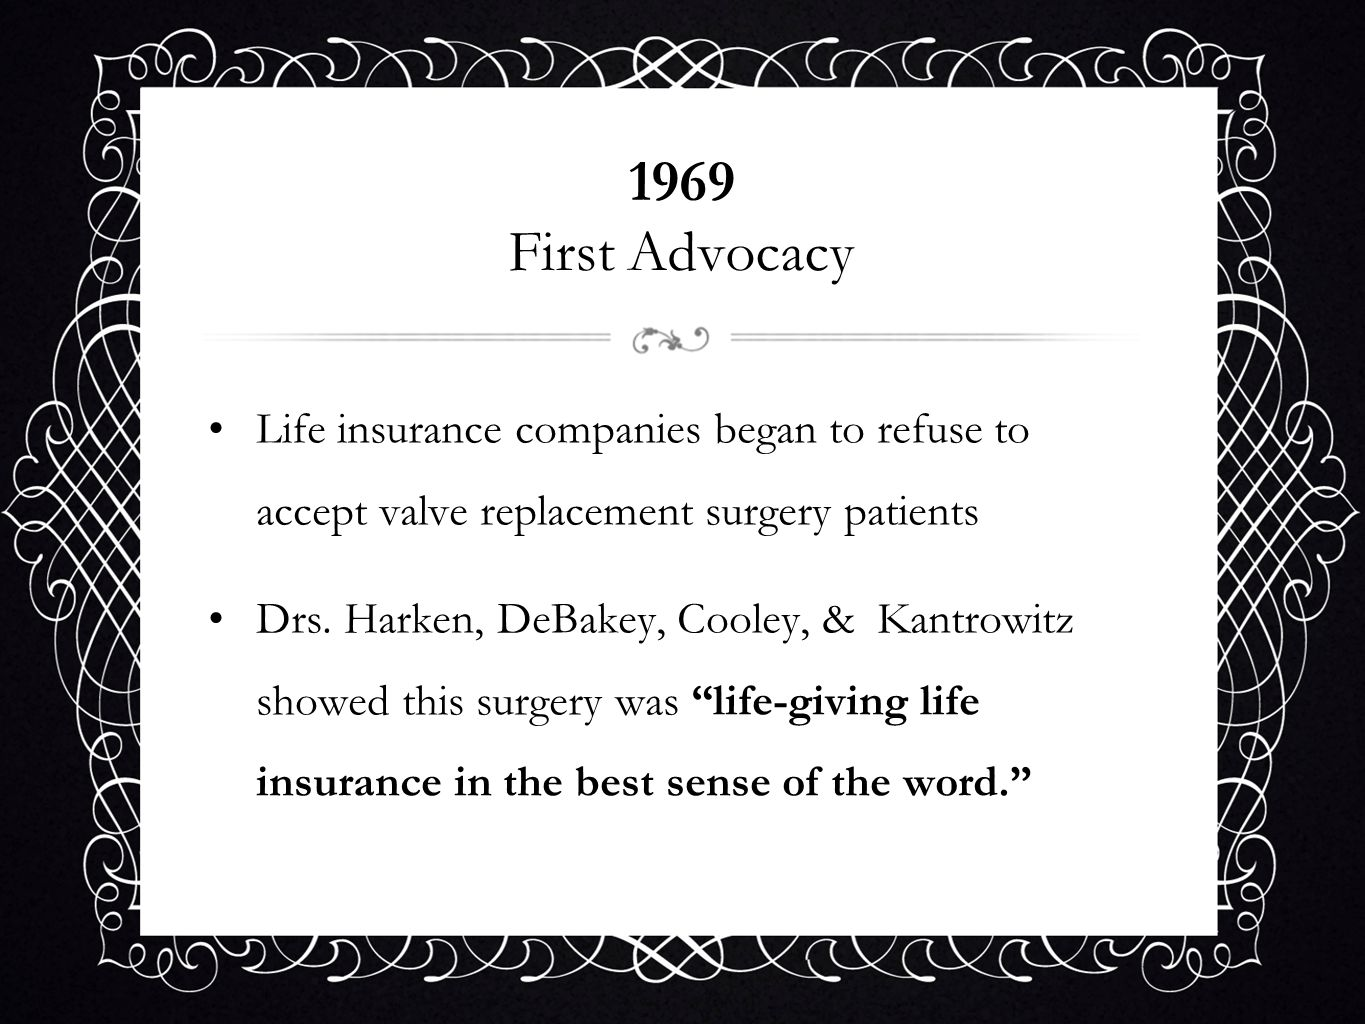 1969 First AdvocacyLife insurance companies began to refuse to accept valve replacement surgery patients.